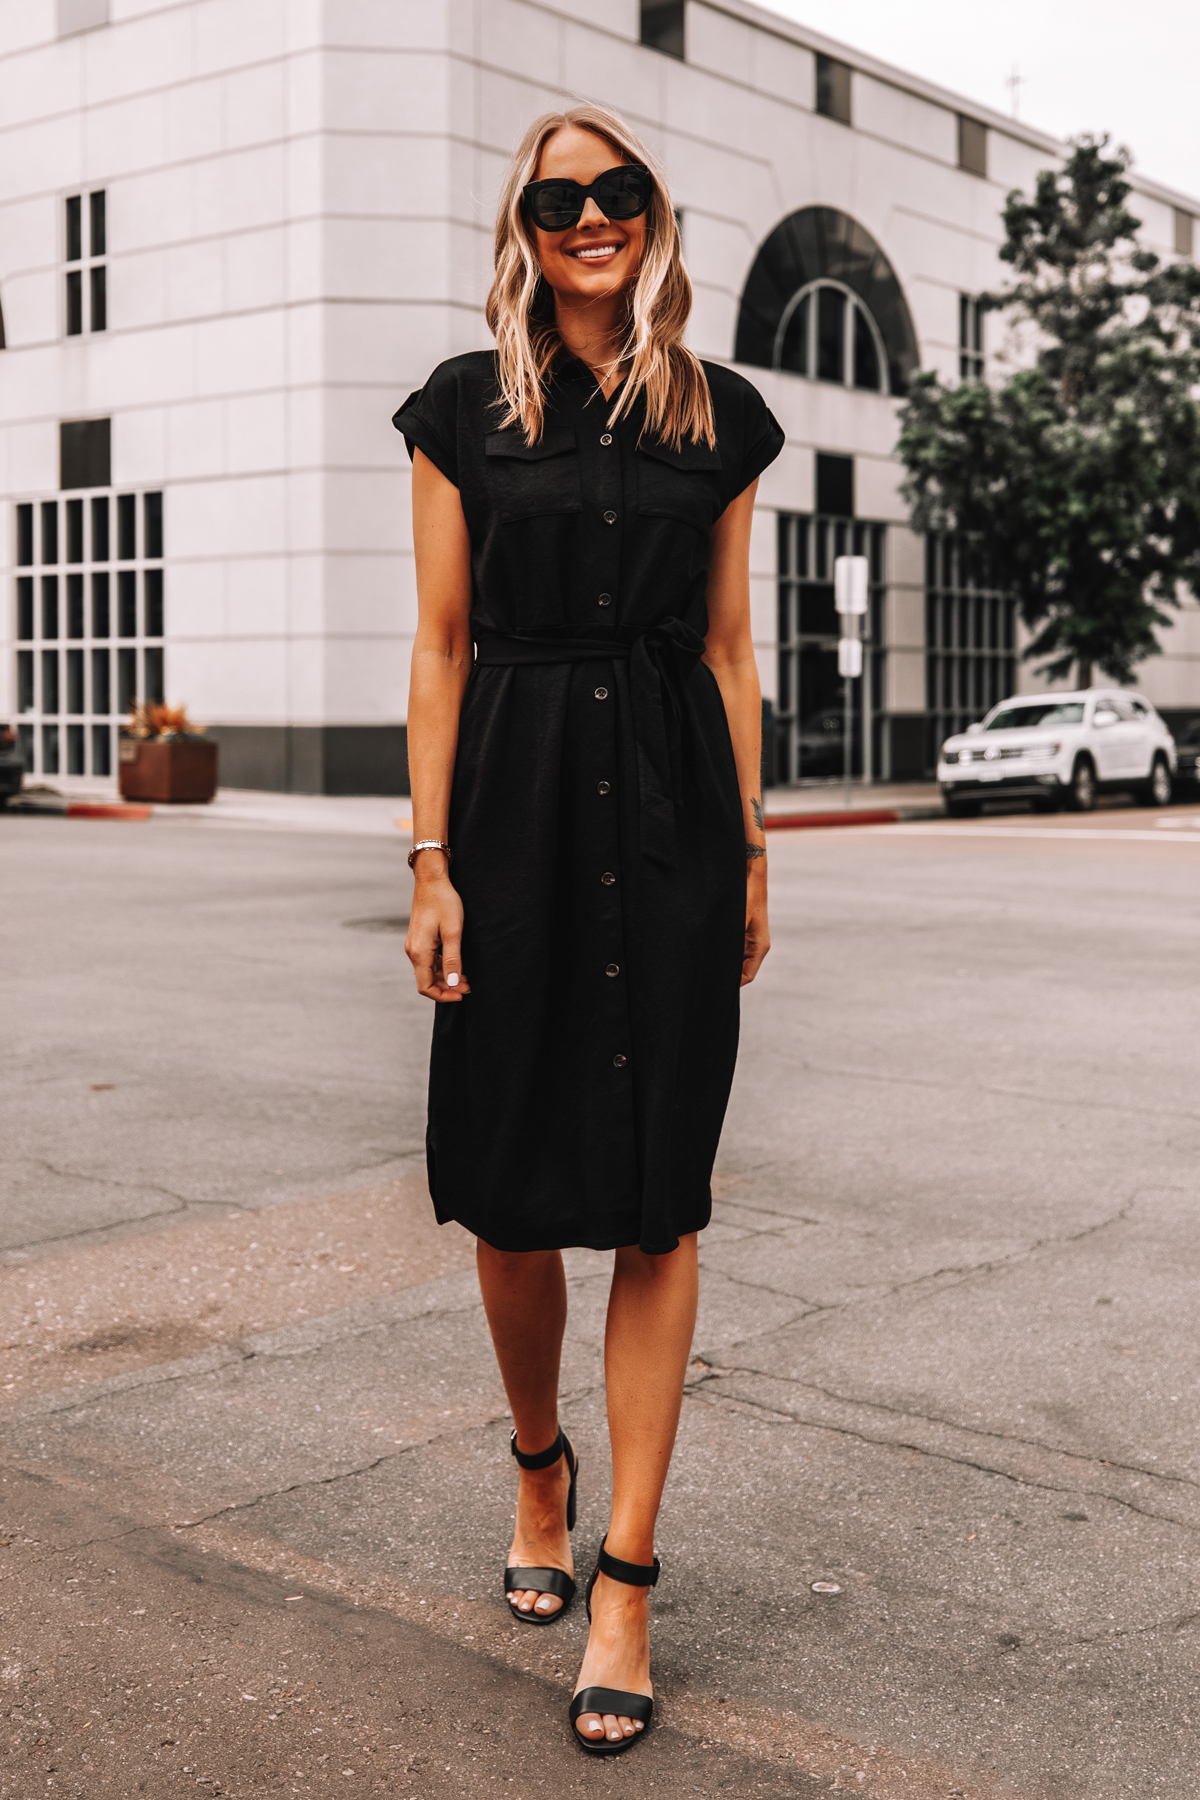 Fashion Jackson Wearing Ann Taylor Black Belted Shirt Dress Black Sandals Workwear Outfit 2